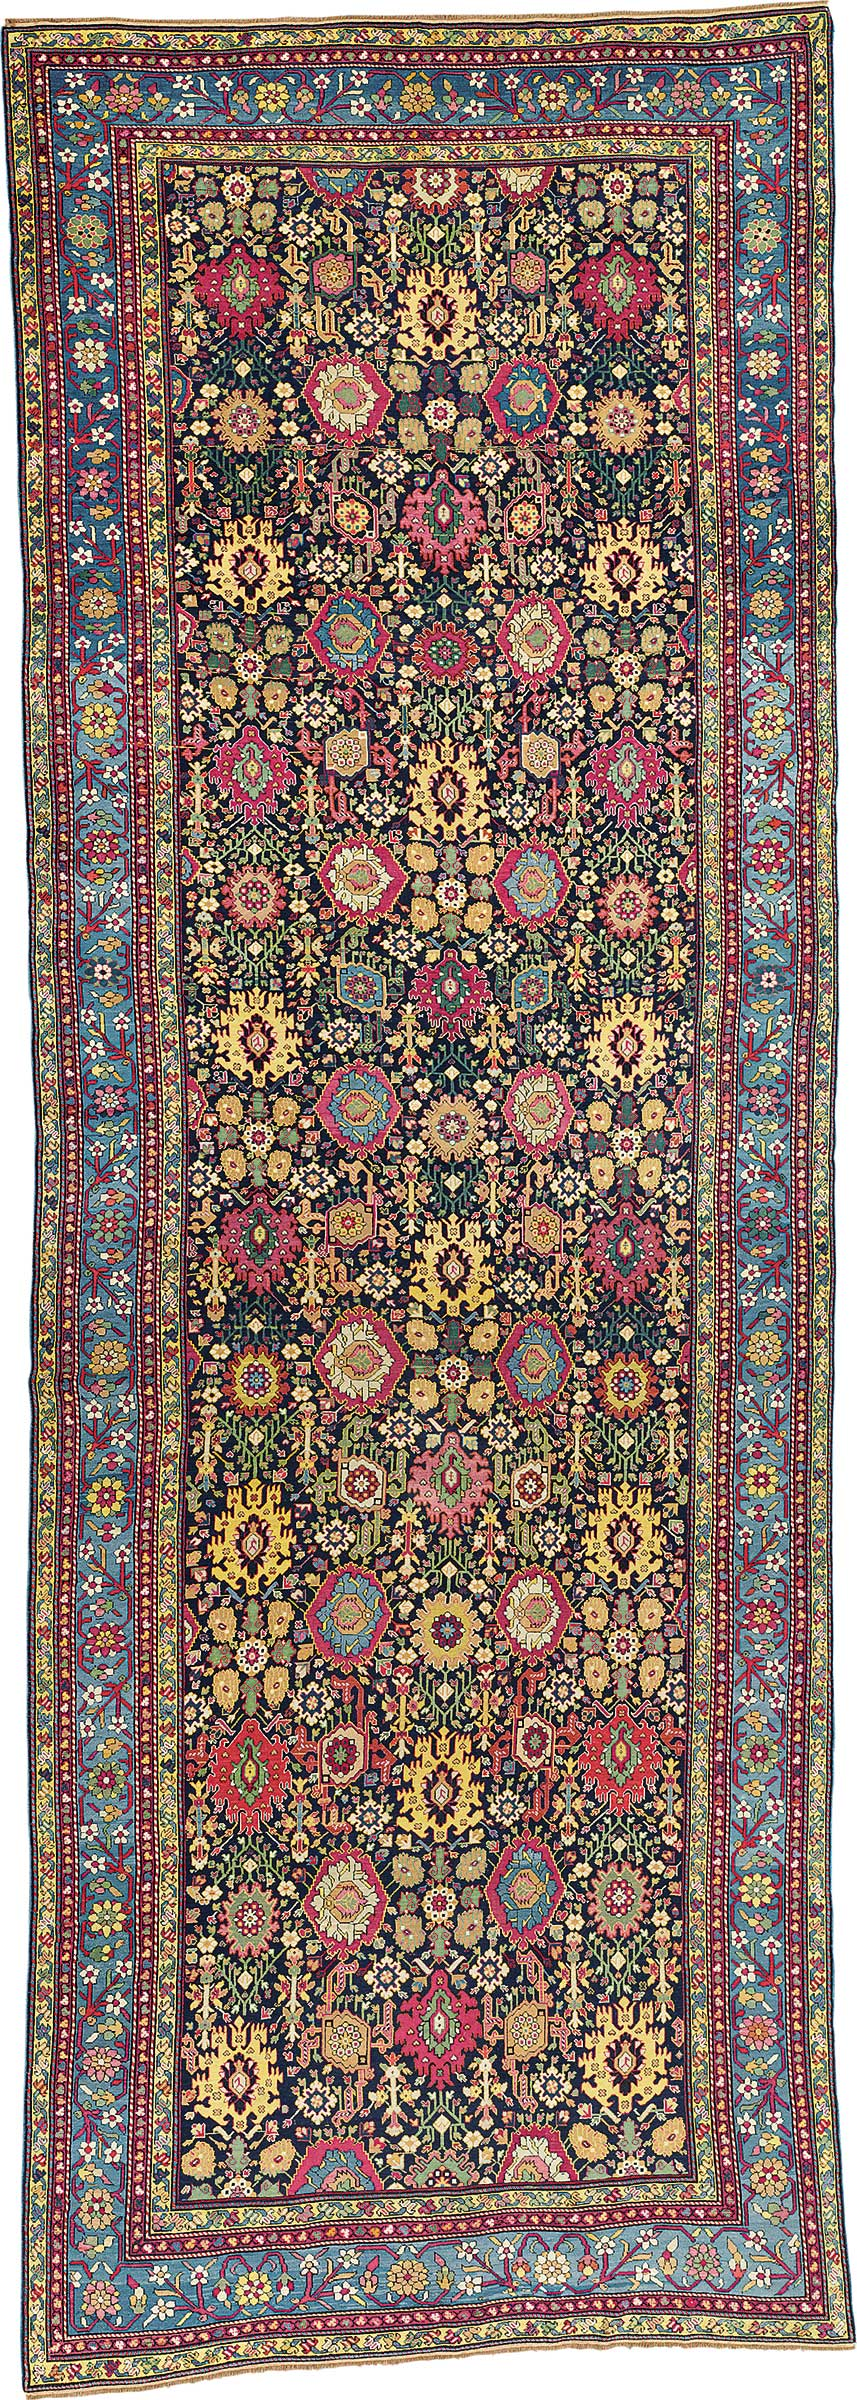 a large northwest persian kelleh early 19th century 21 ft x 7 ft 3 in 638 cm x 220 cm this piece was offered in oriental rugs and carpets on 19 april